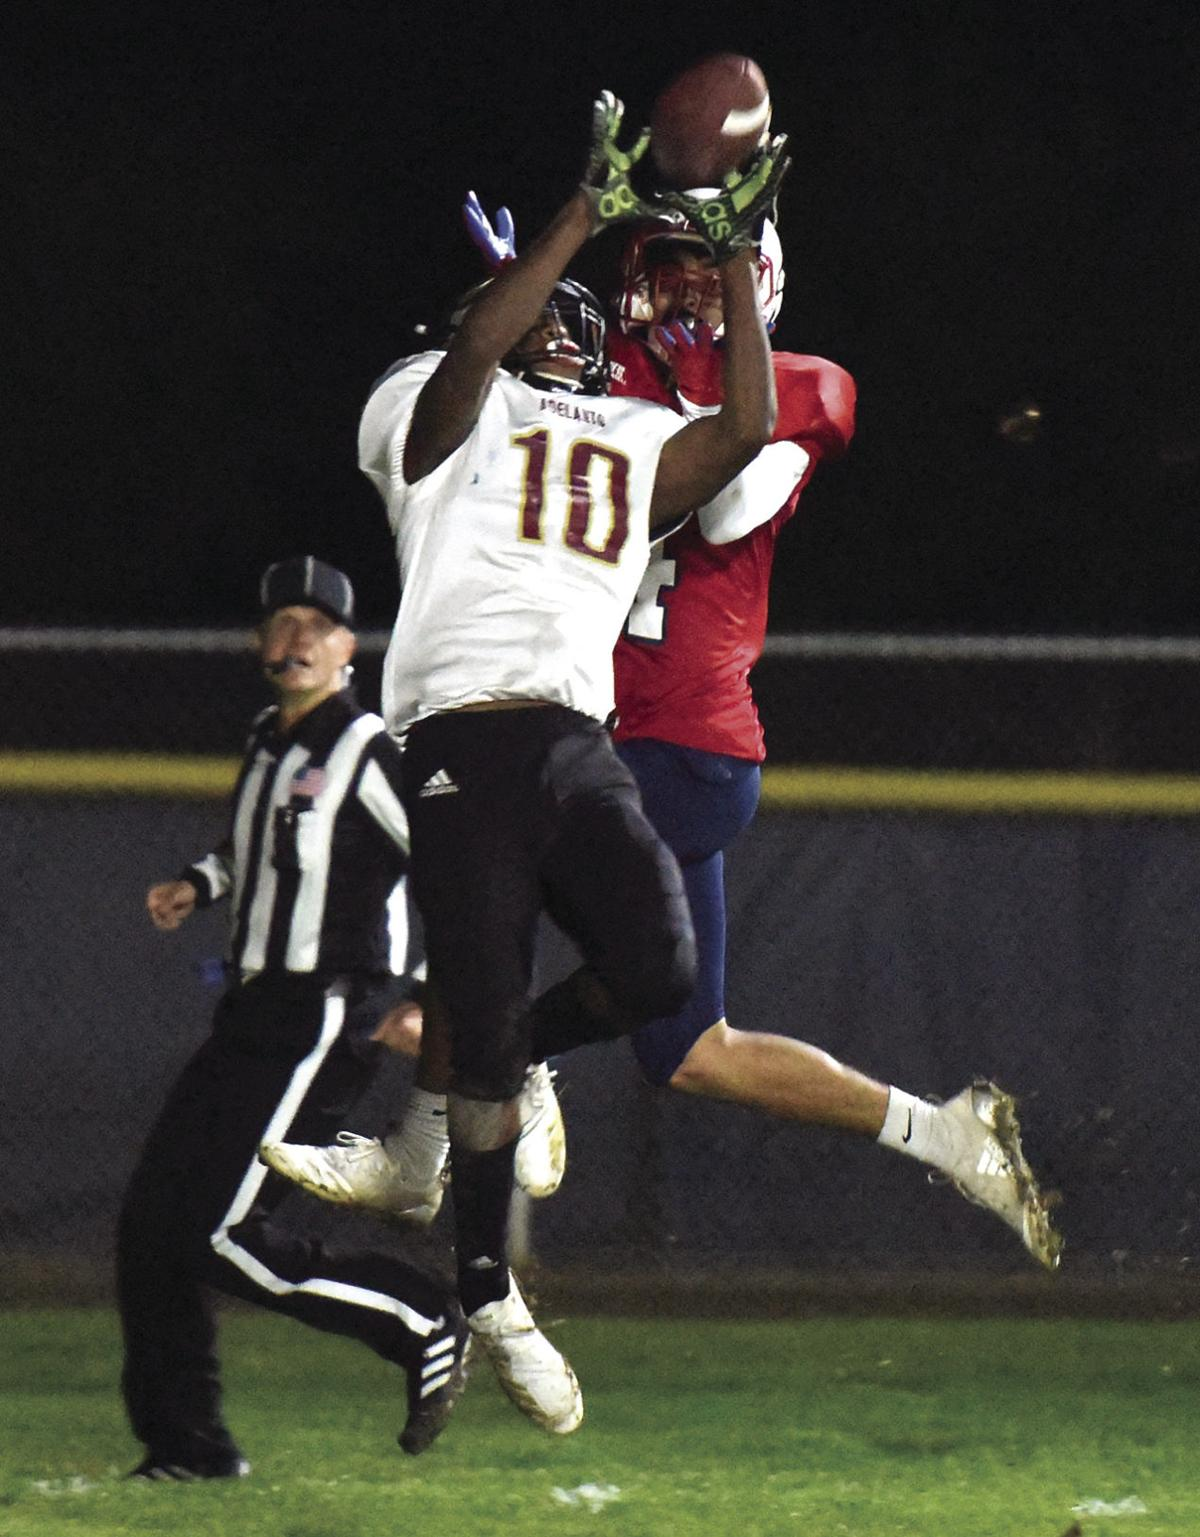 Strathmore Football: Bring on the state finals | Sports